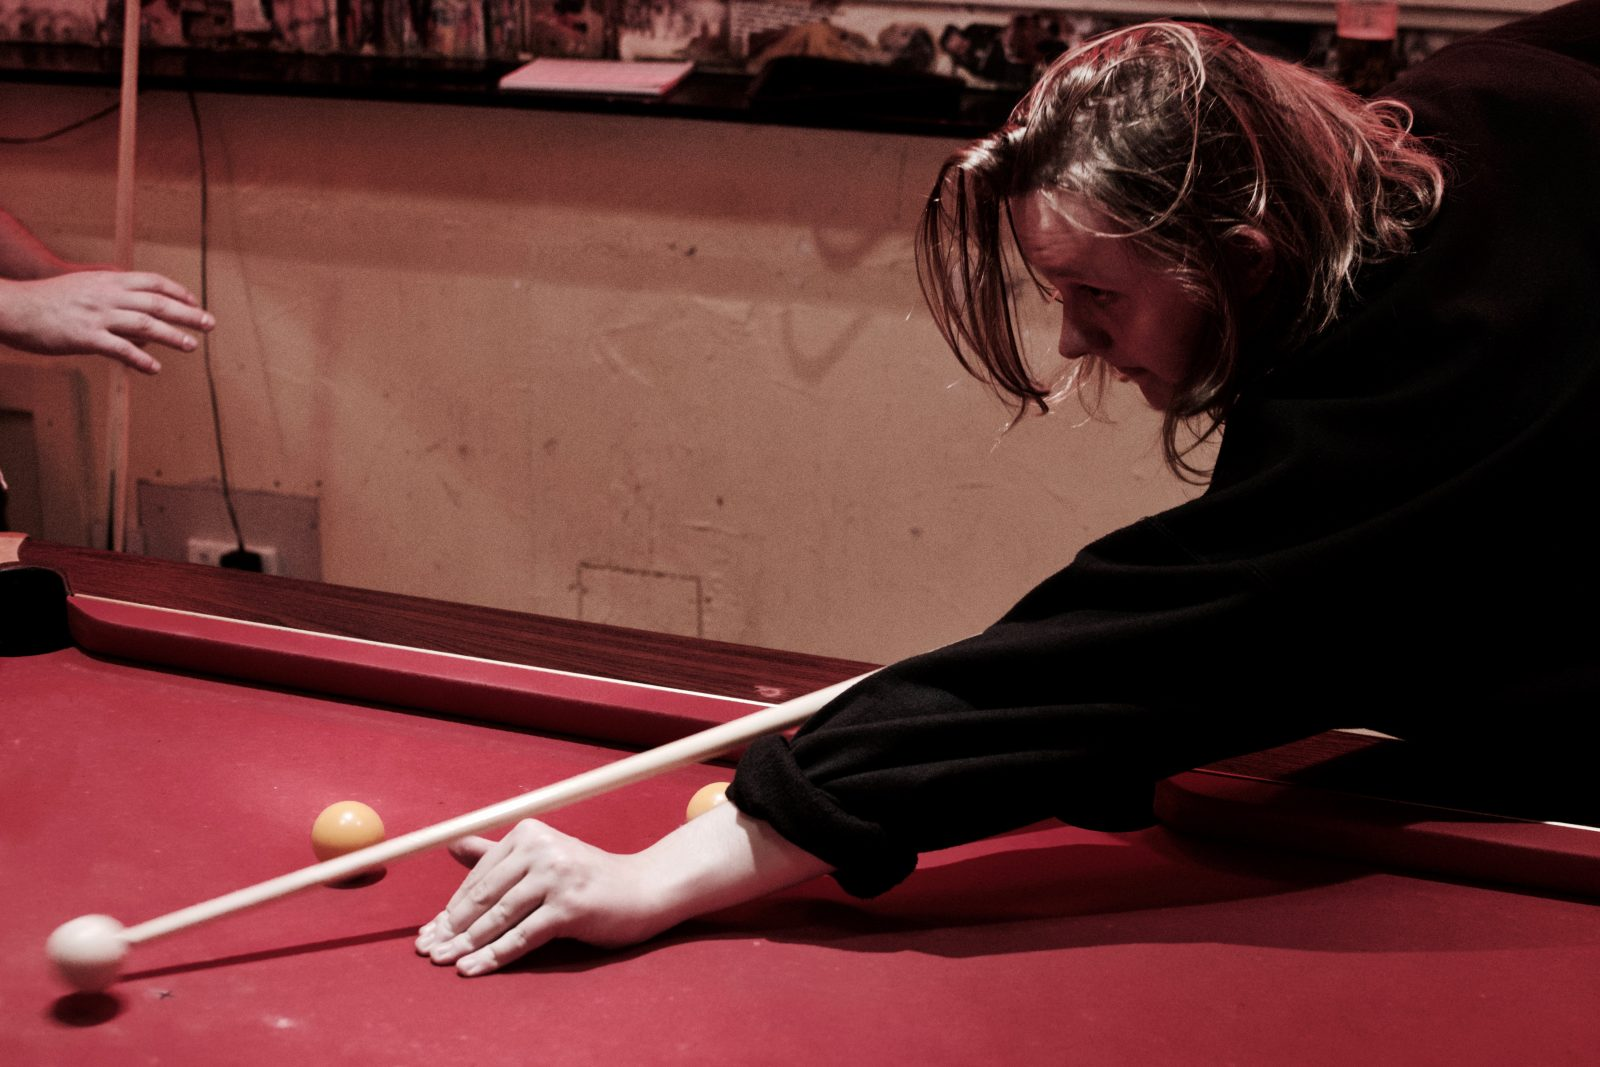 A game of pool with Lewis Capaldi